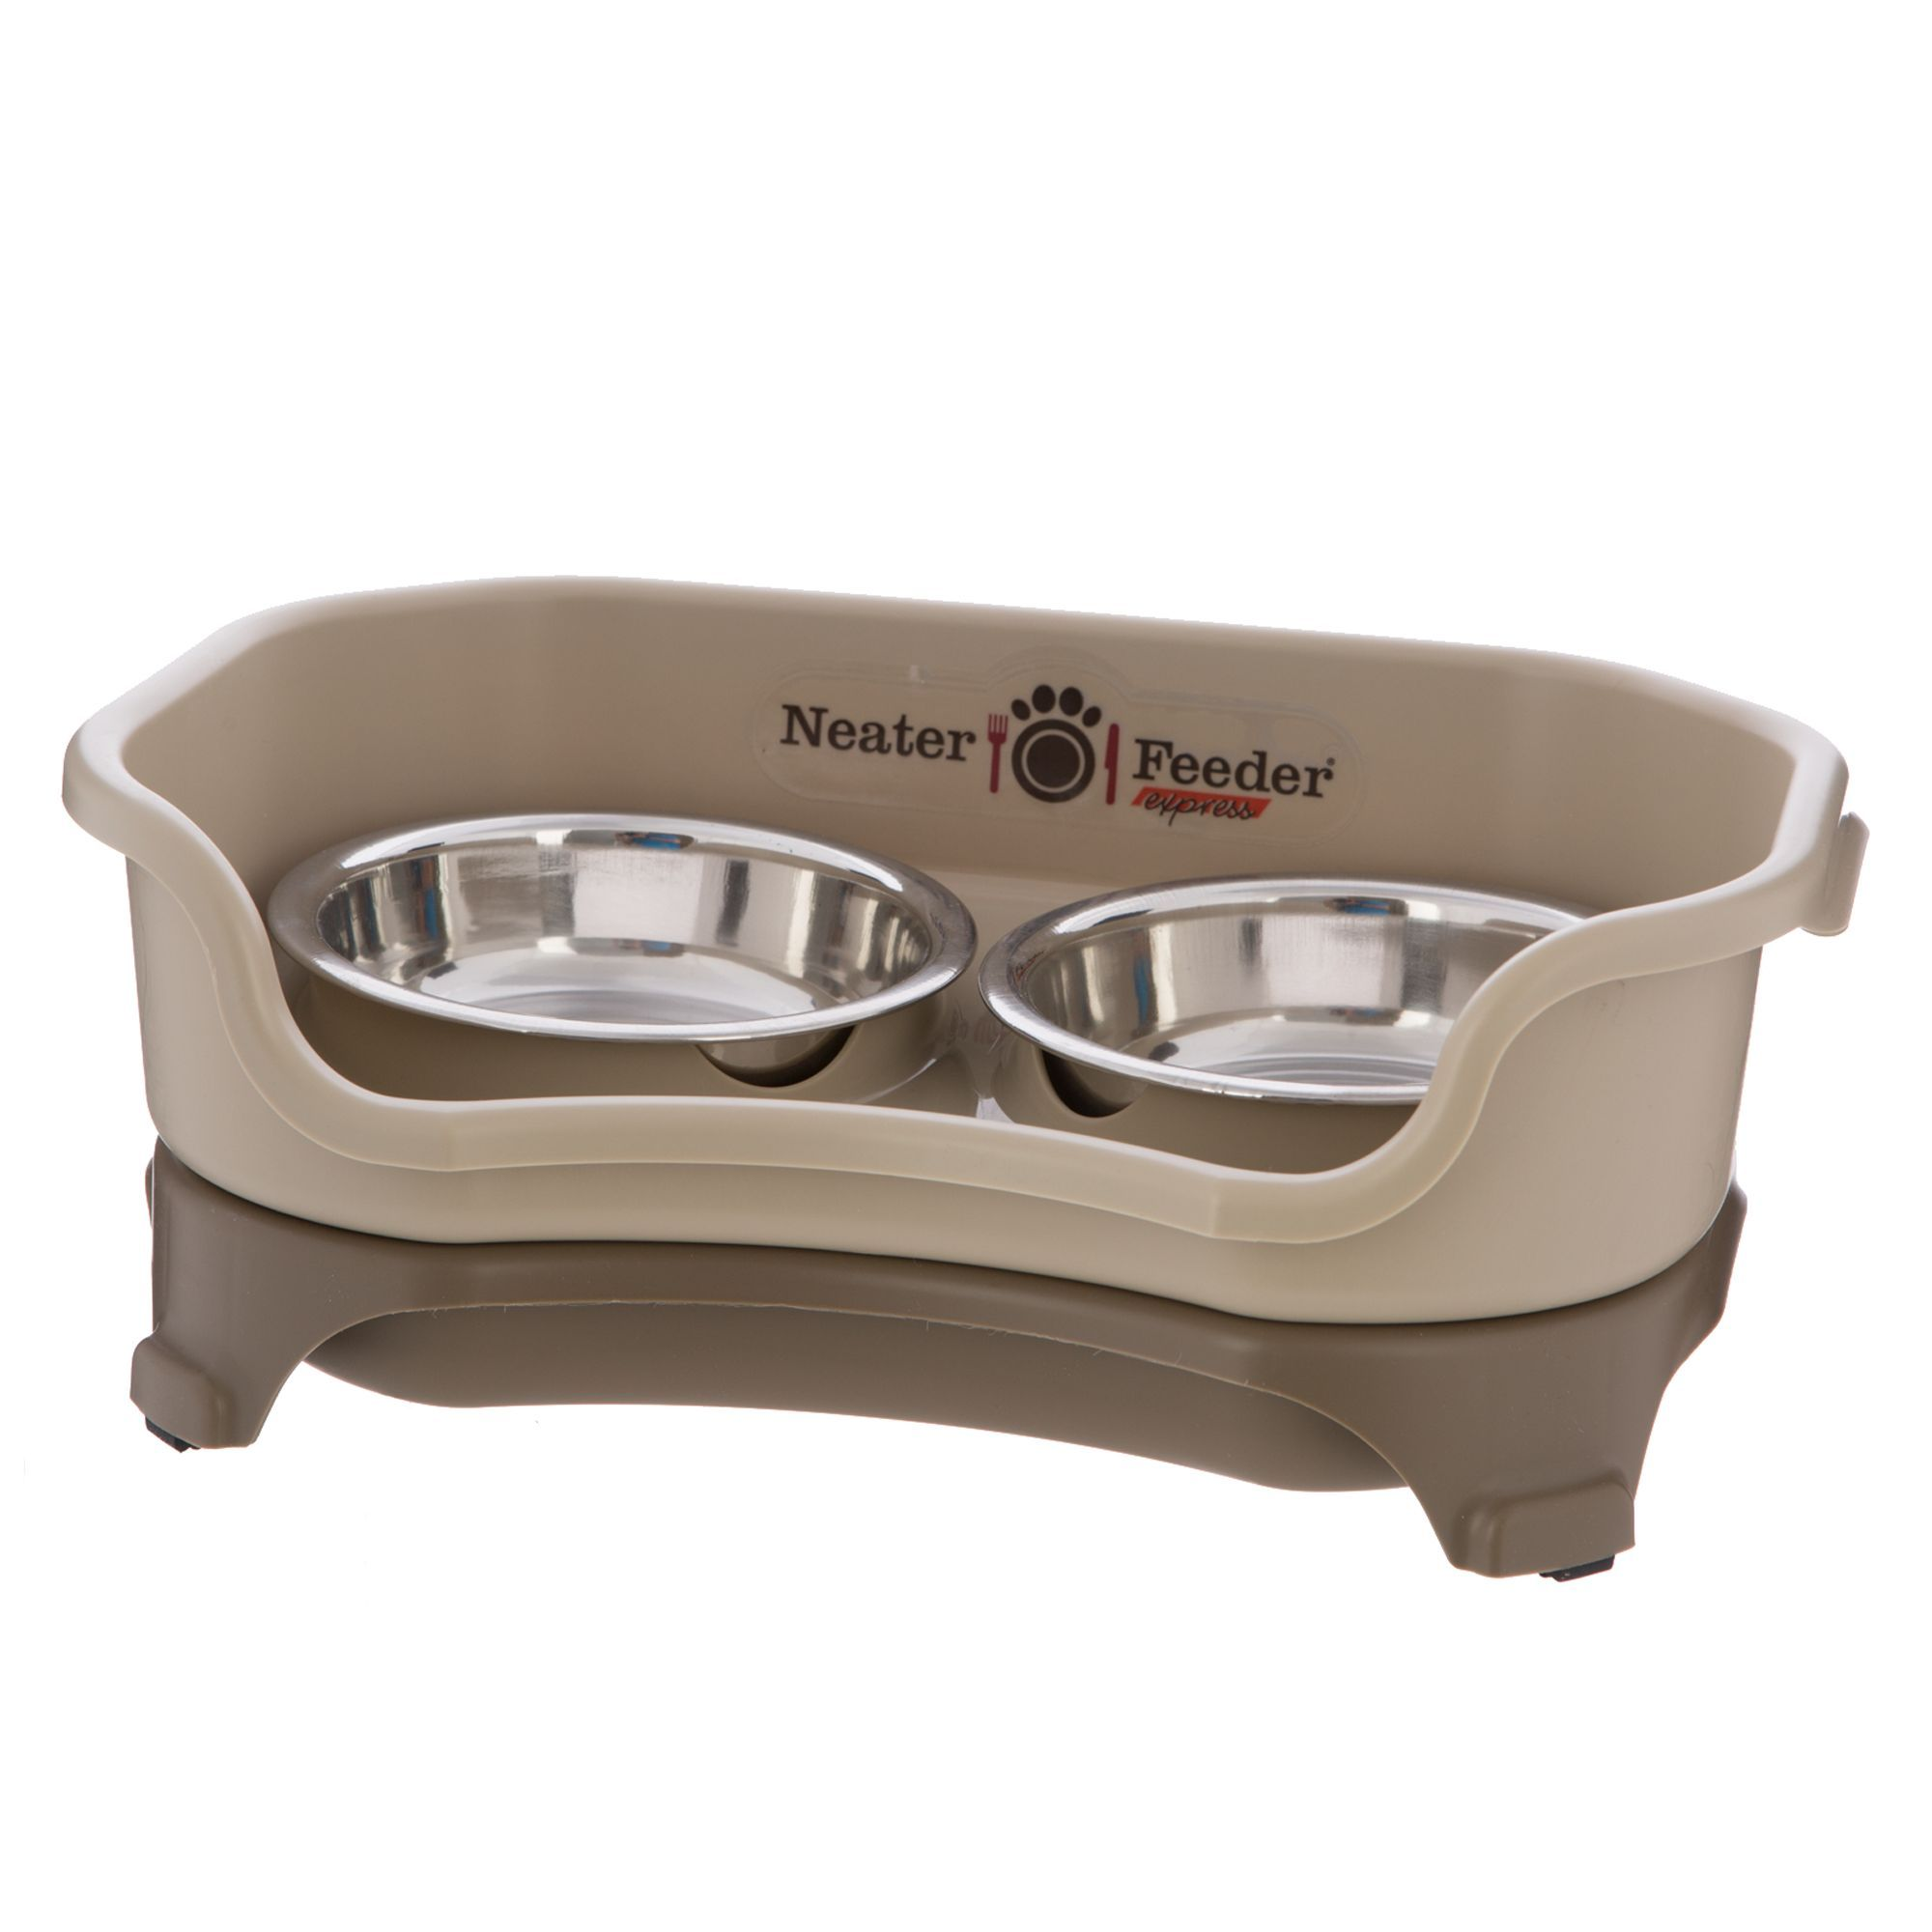 Neater pets neater feeder express cat feeder in tan in